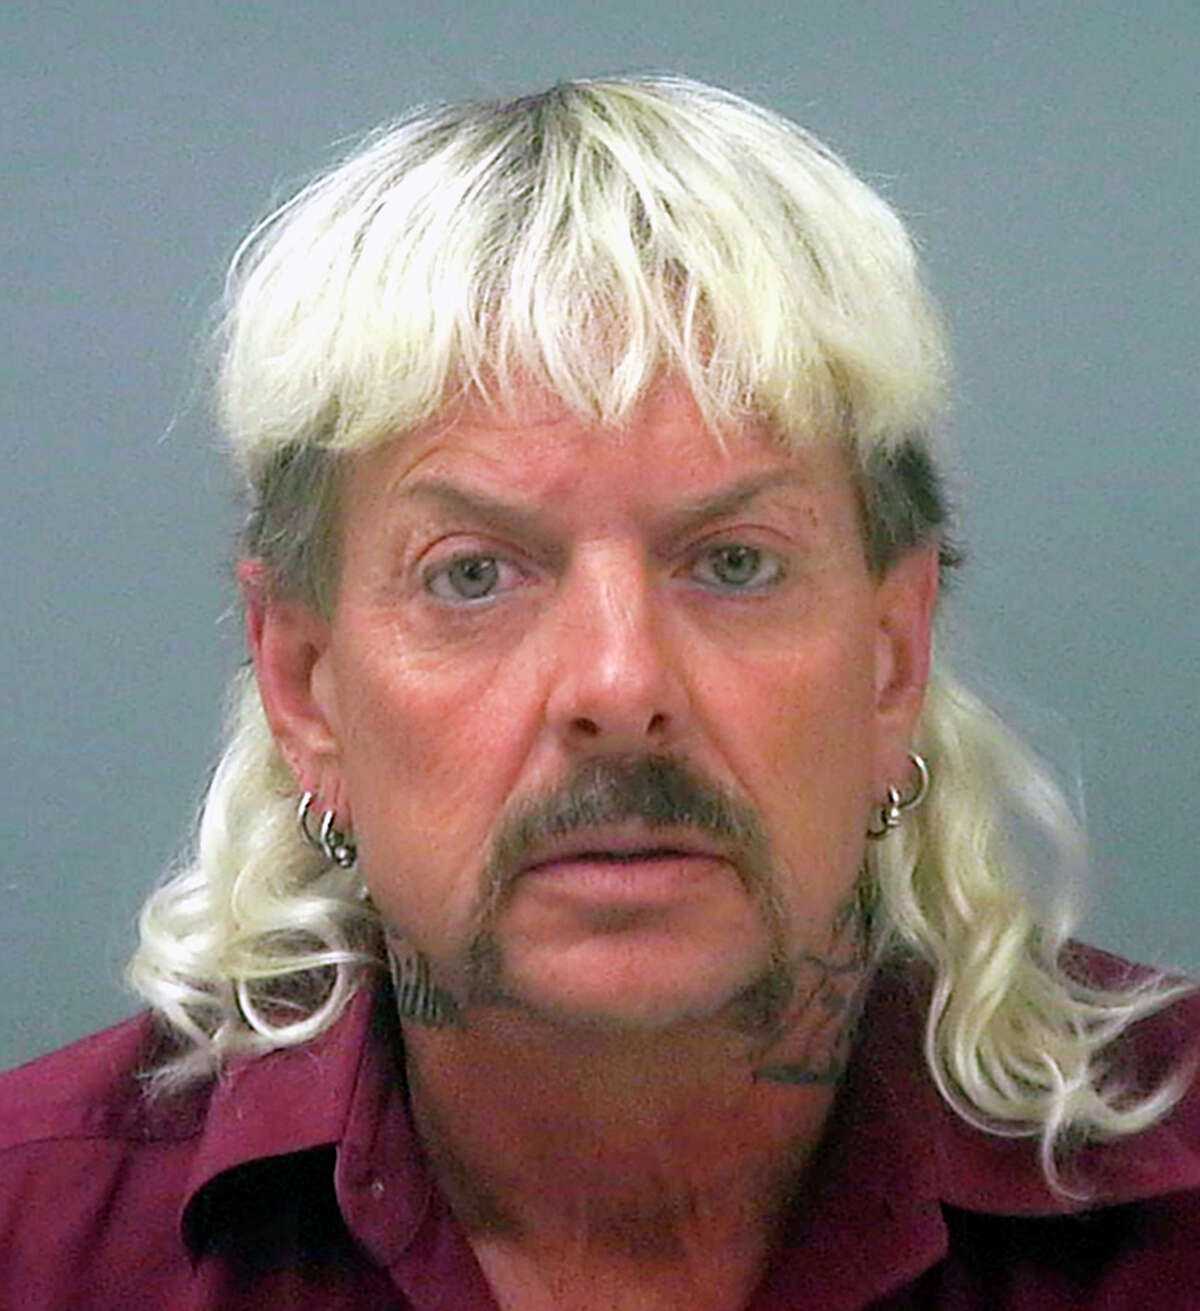 FILE - This undated file photo provided by the Santa Rose County Jail in Milton, Fla., shows Joseph Maldonado-Passage, also known as Joe Exotic. A federal judge in Oklahoma has awarded ownership of the zoo made famous in Netflix's a€œTiger Kinga€ docuseries to Joe Exotic's rival, Carole Baskin. In a ruling Monday, June 1, 2020, U.S. District Judge Scott Palk granted control of the Oklahoma zoo that was previously run by Joseph Maldonado-Passage a€?